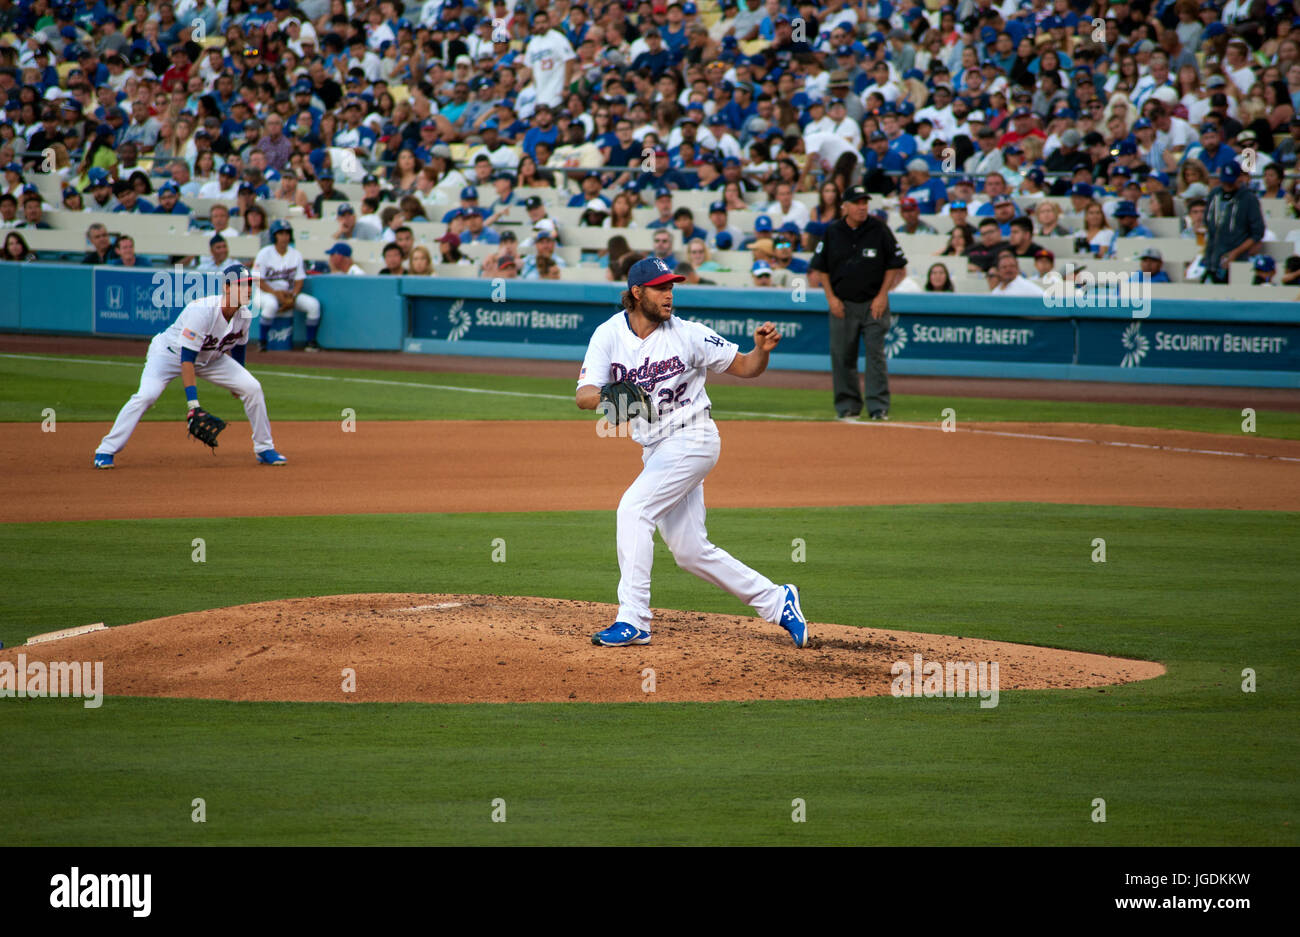 Dodger ace pitcher Clayton Kershaw raises his fist after striking out another batter at Dodger Stadium. - Stock Image